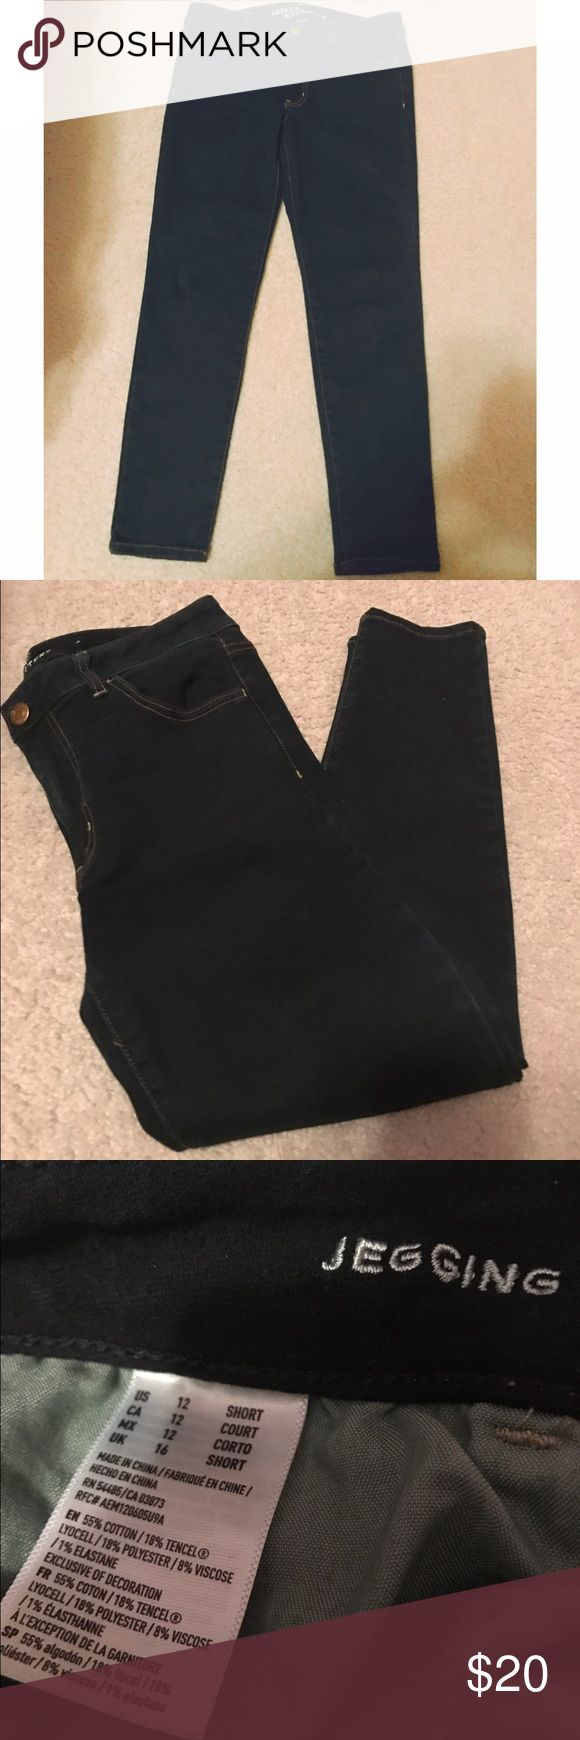 American Eagle Outfitters Super Stretchy Jeggings American Eagle Outfitters Dark Wash Super Stretch Jeggings - Size 12. Like new condition! No flaws. Feel free to ask any questions you may have. American Eagle Outfitters Jeans Skinny